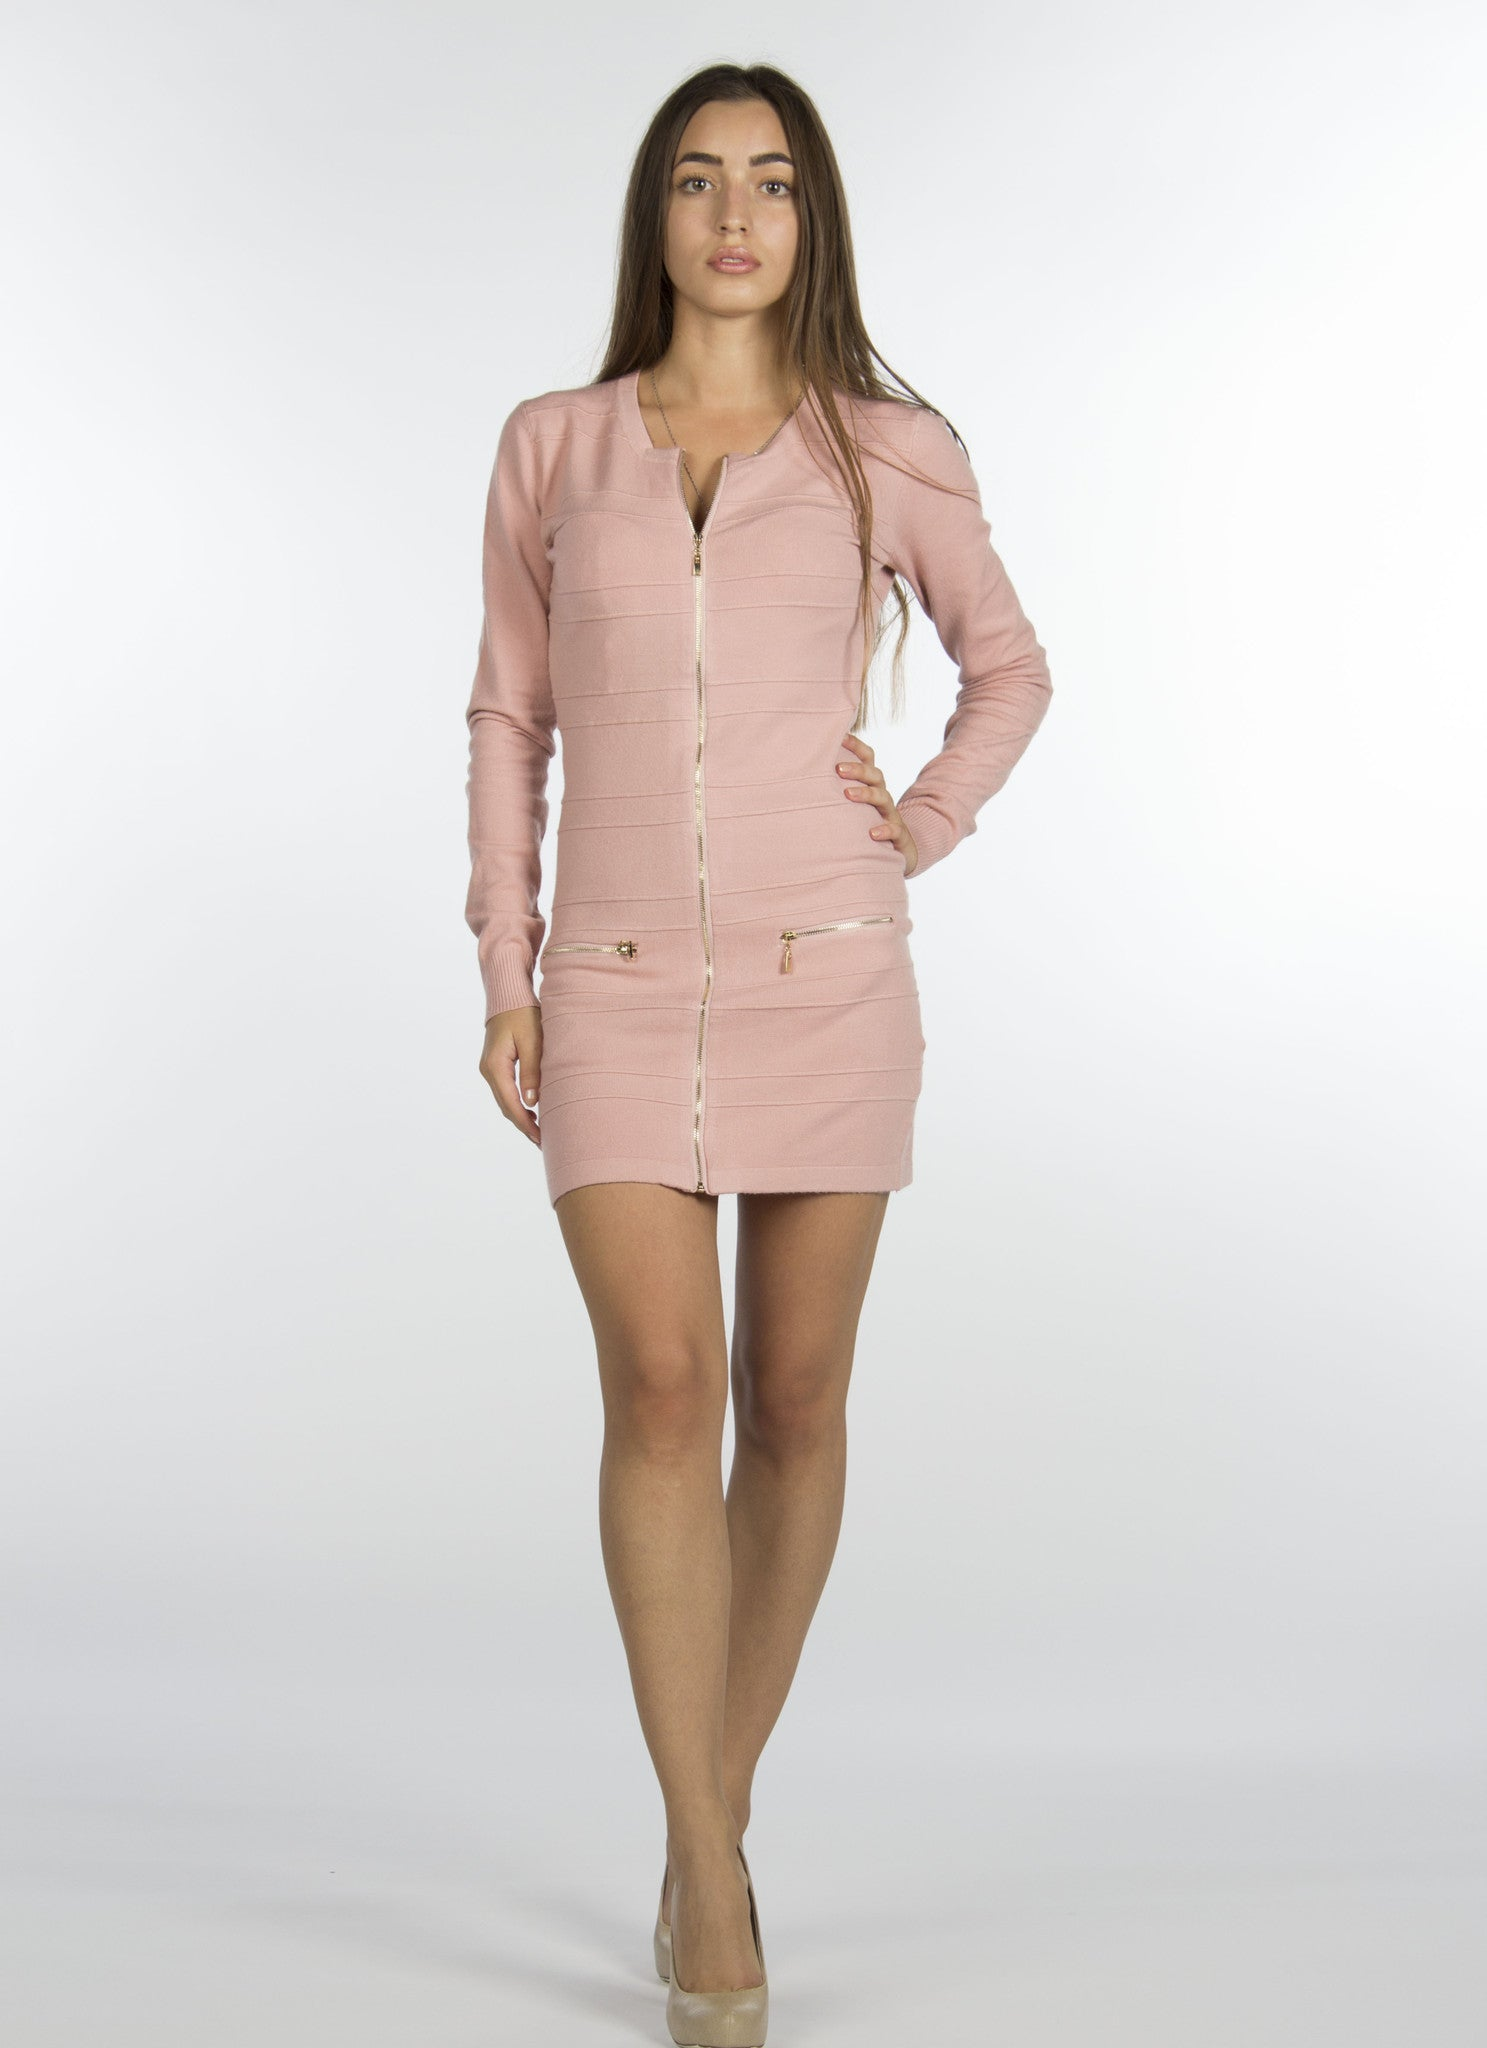 Soft Pink Zipper Dress-330